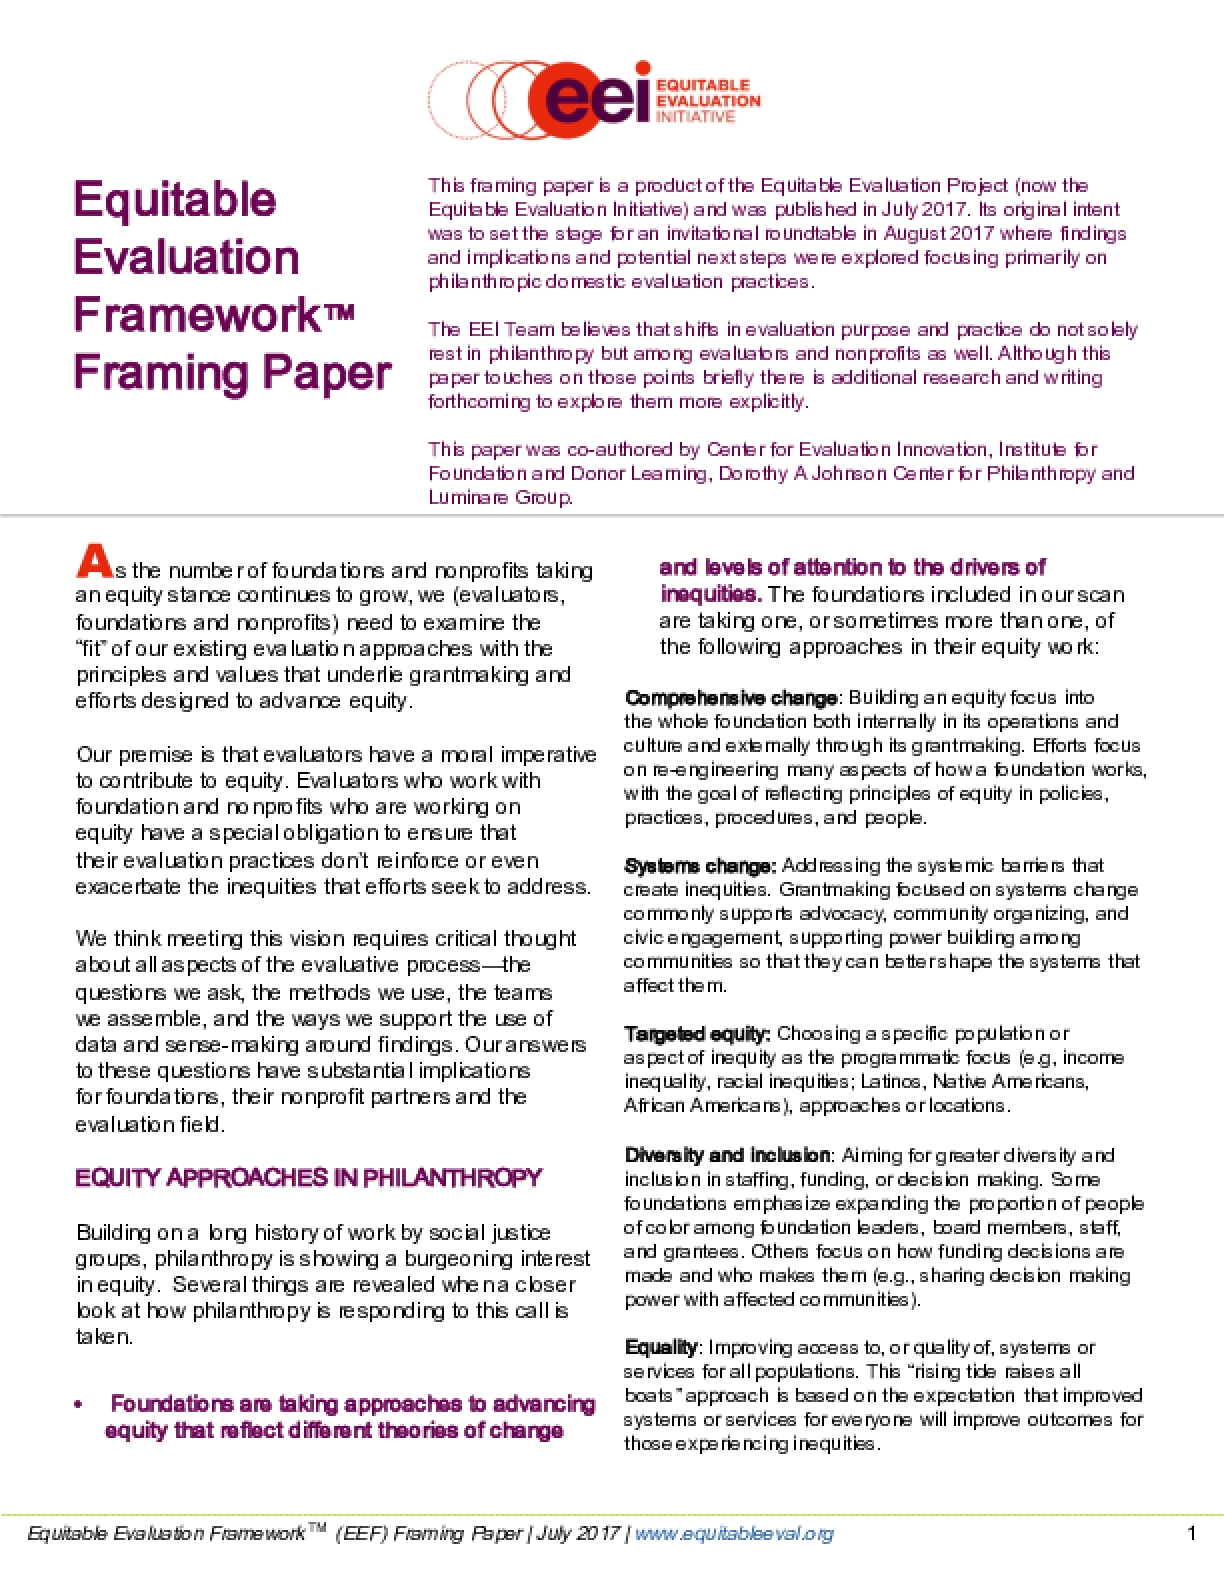 Equitable Evaluation Framework Framing Paper